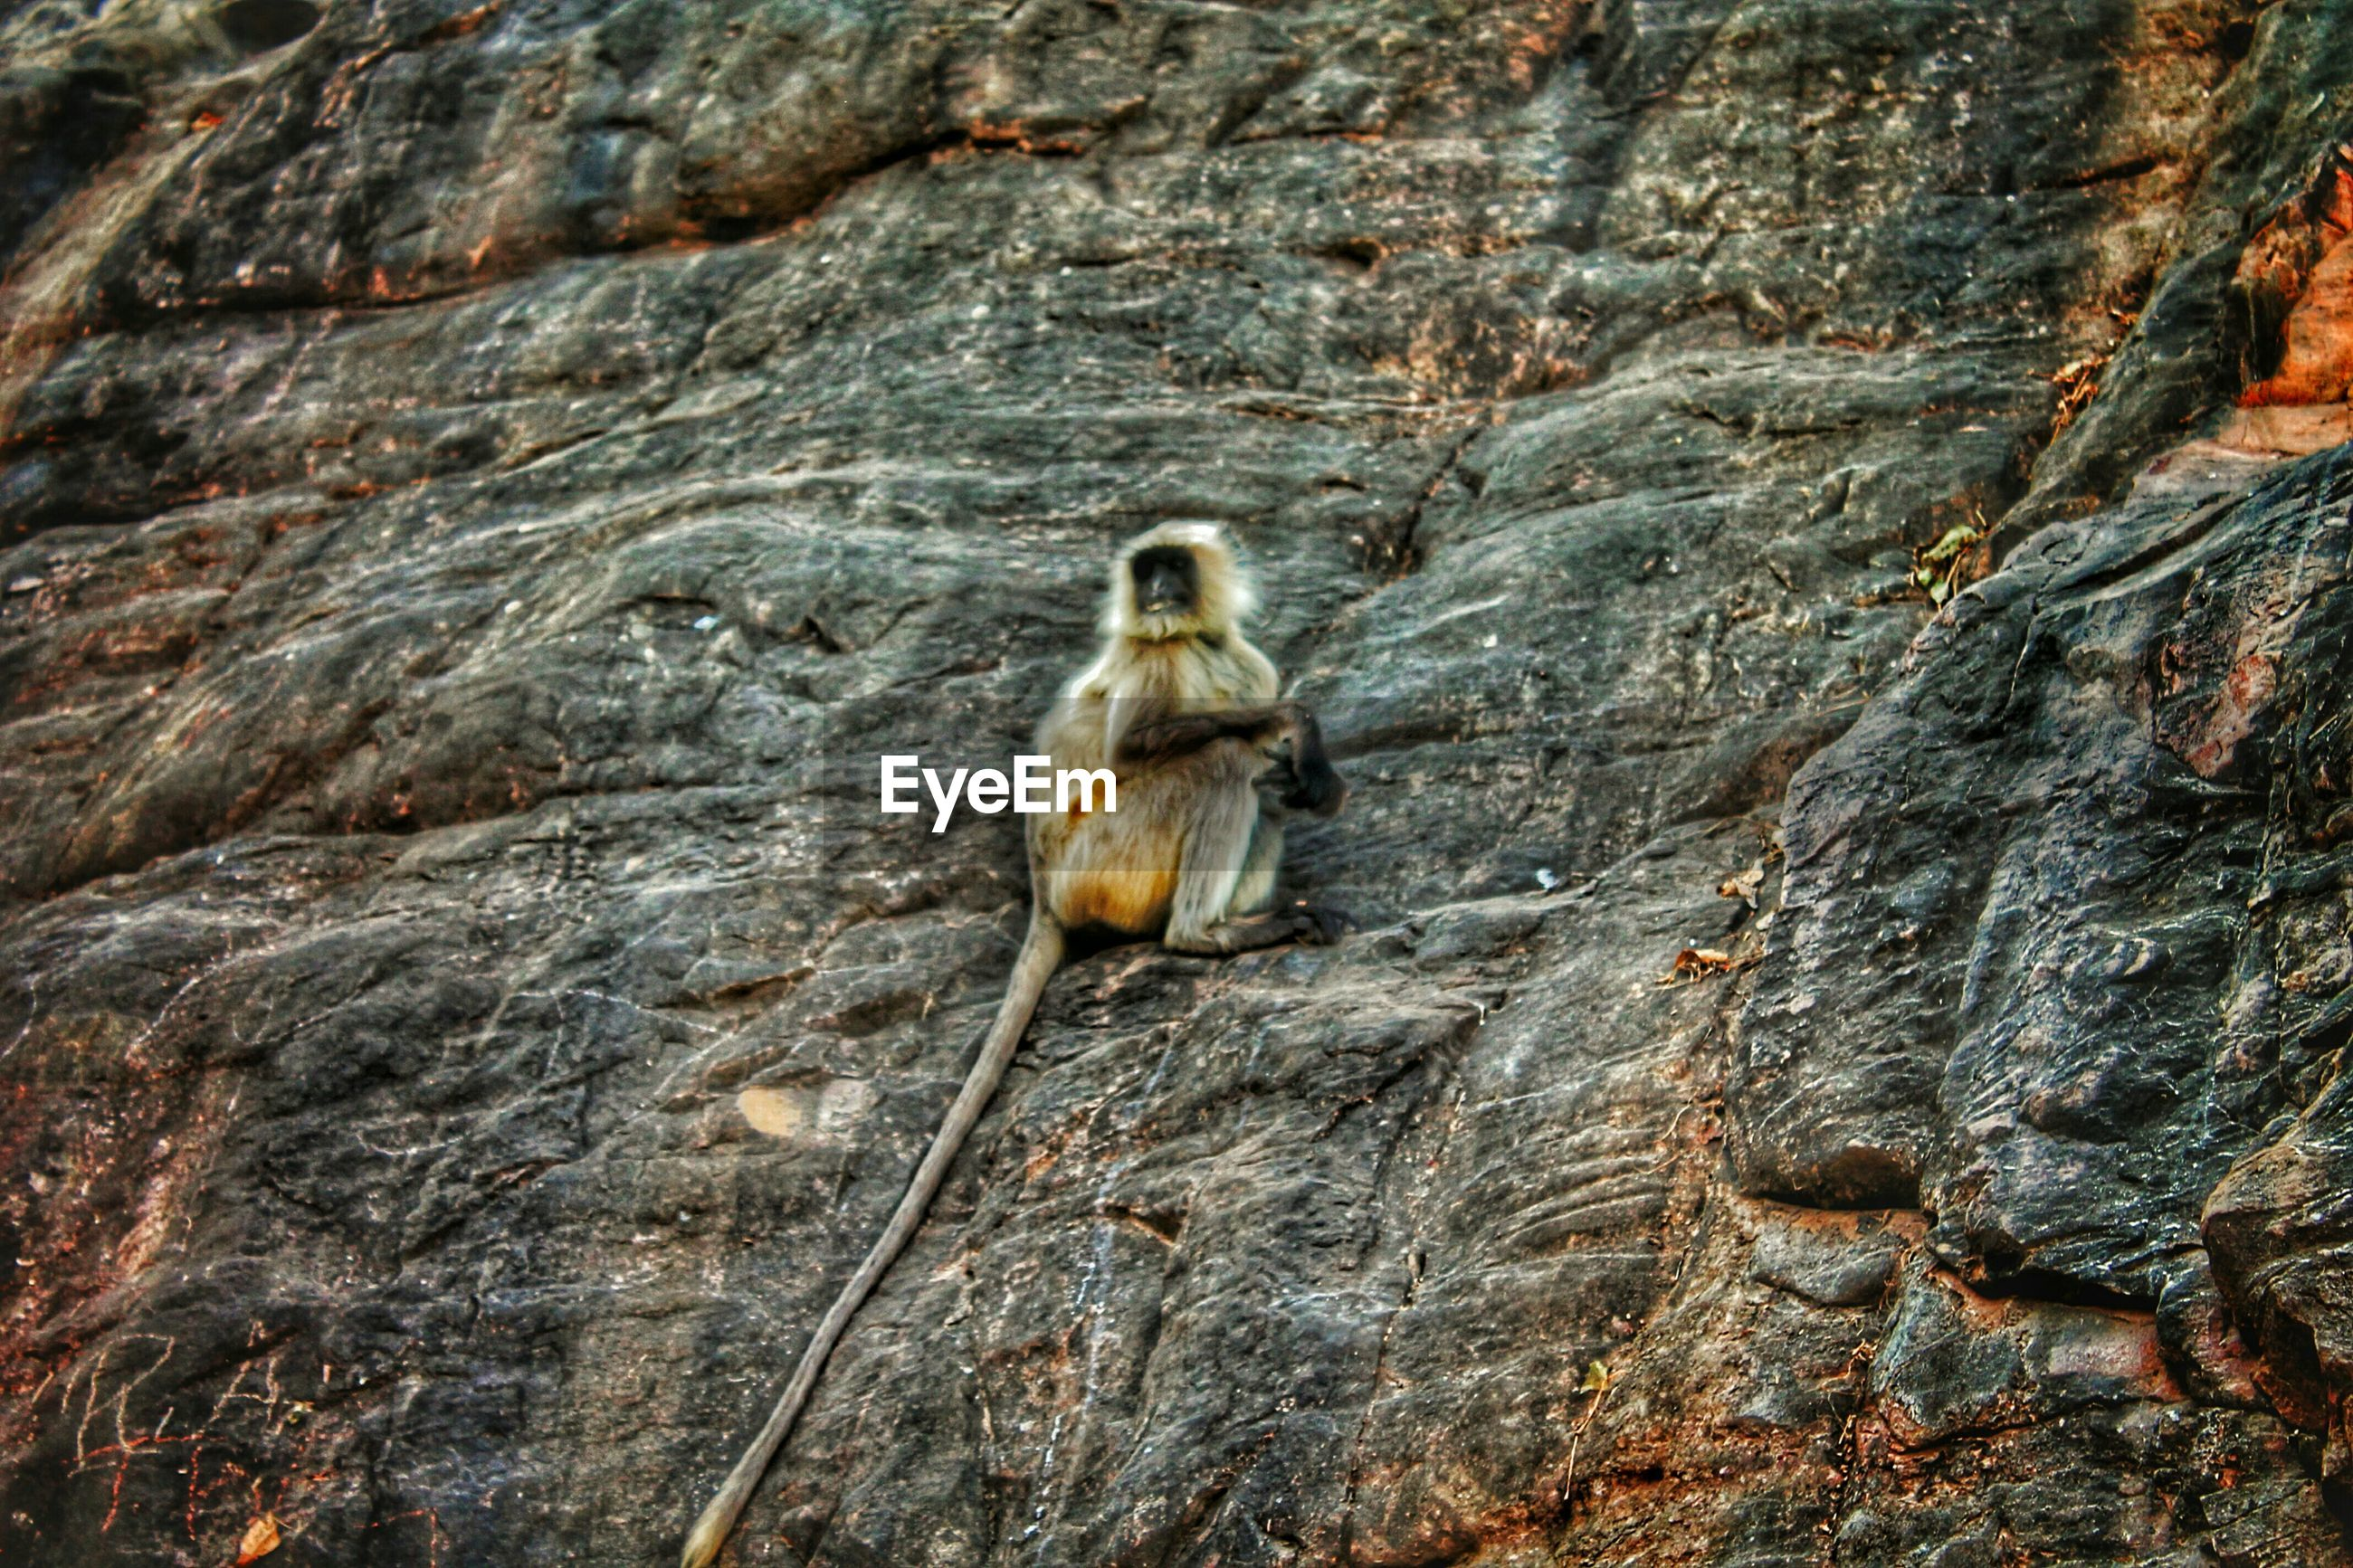 Low angle view of gray langur on rock